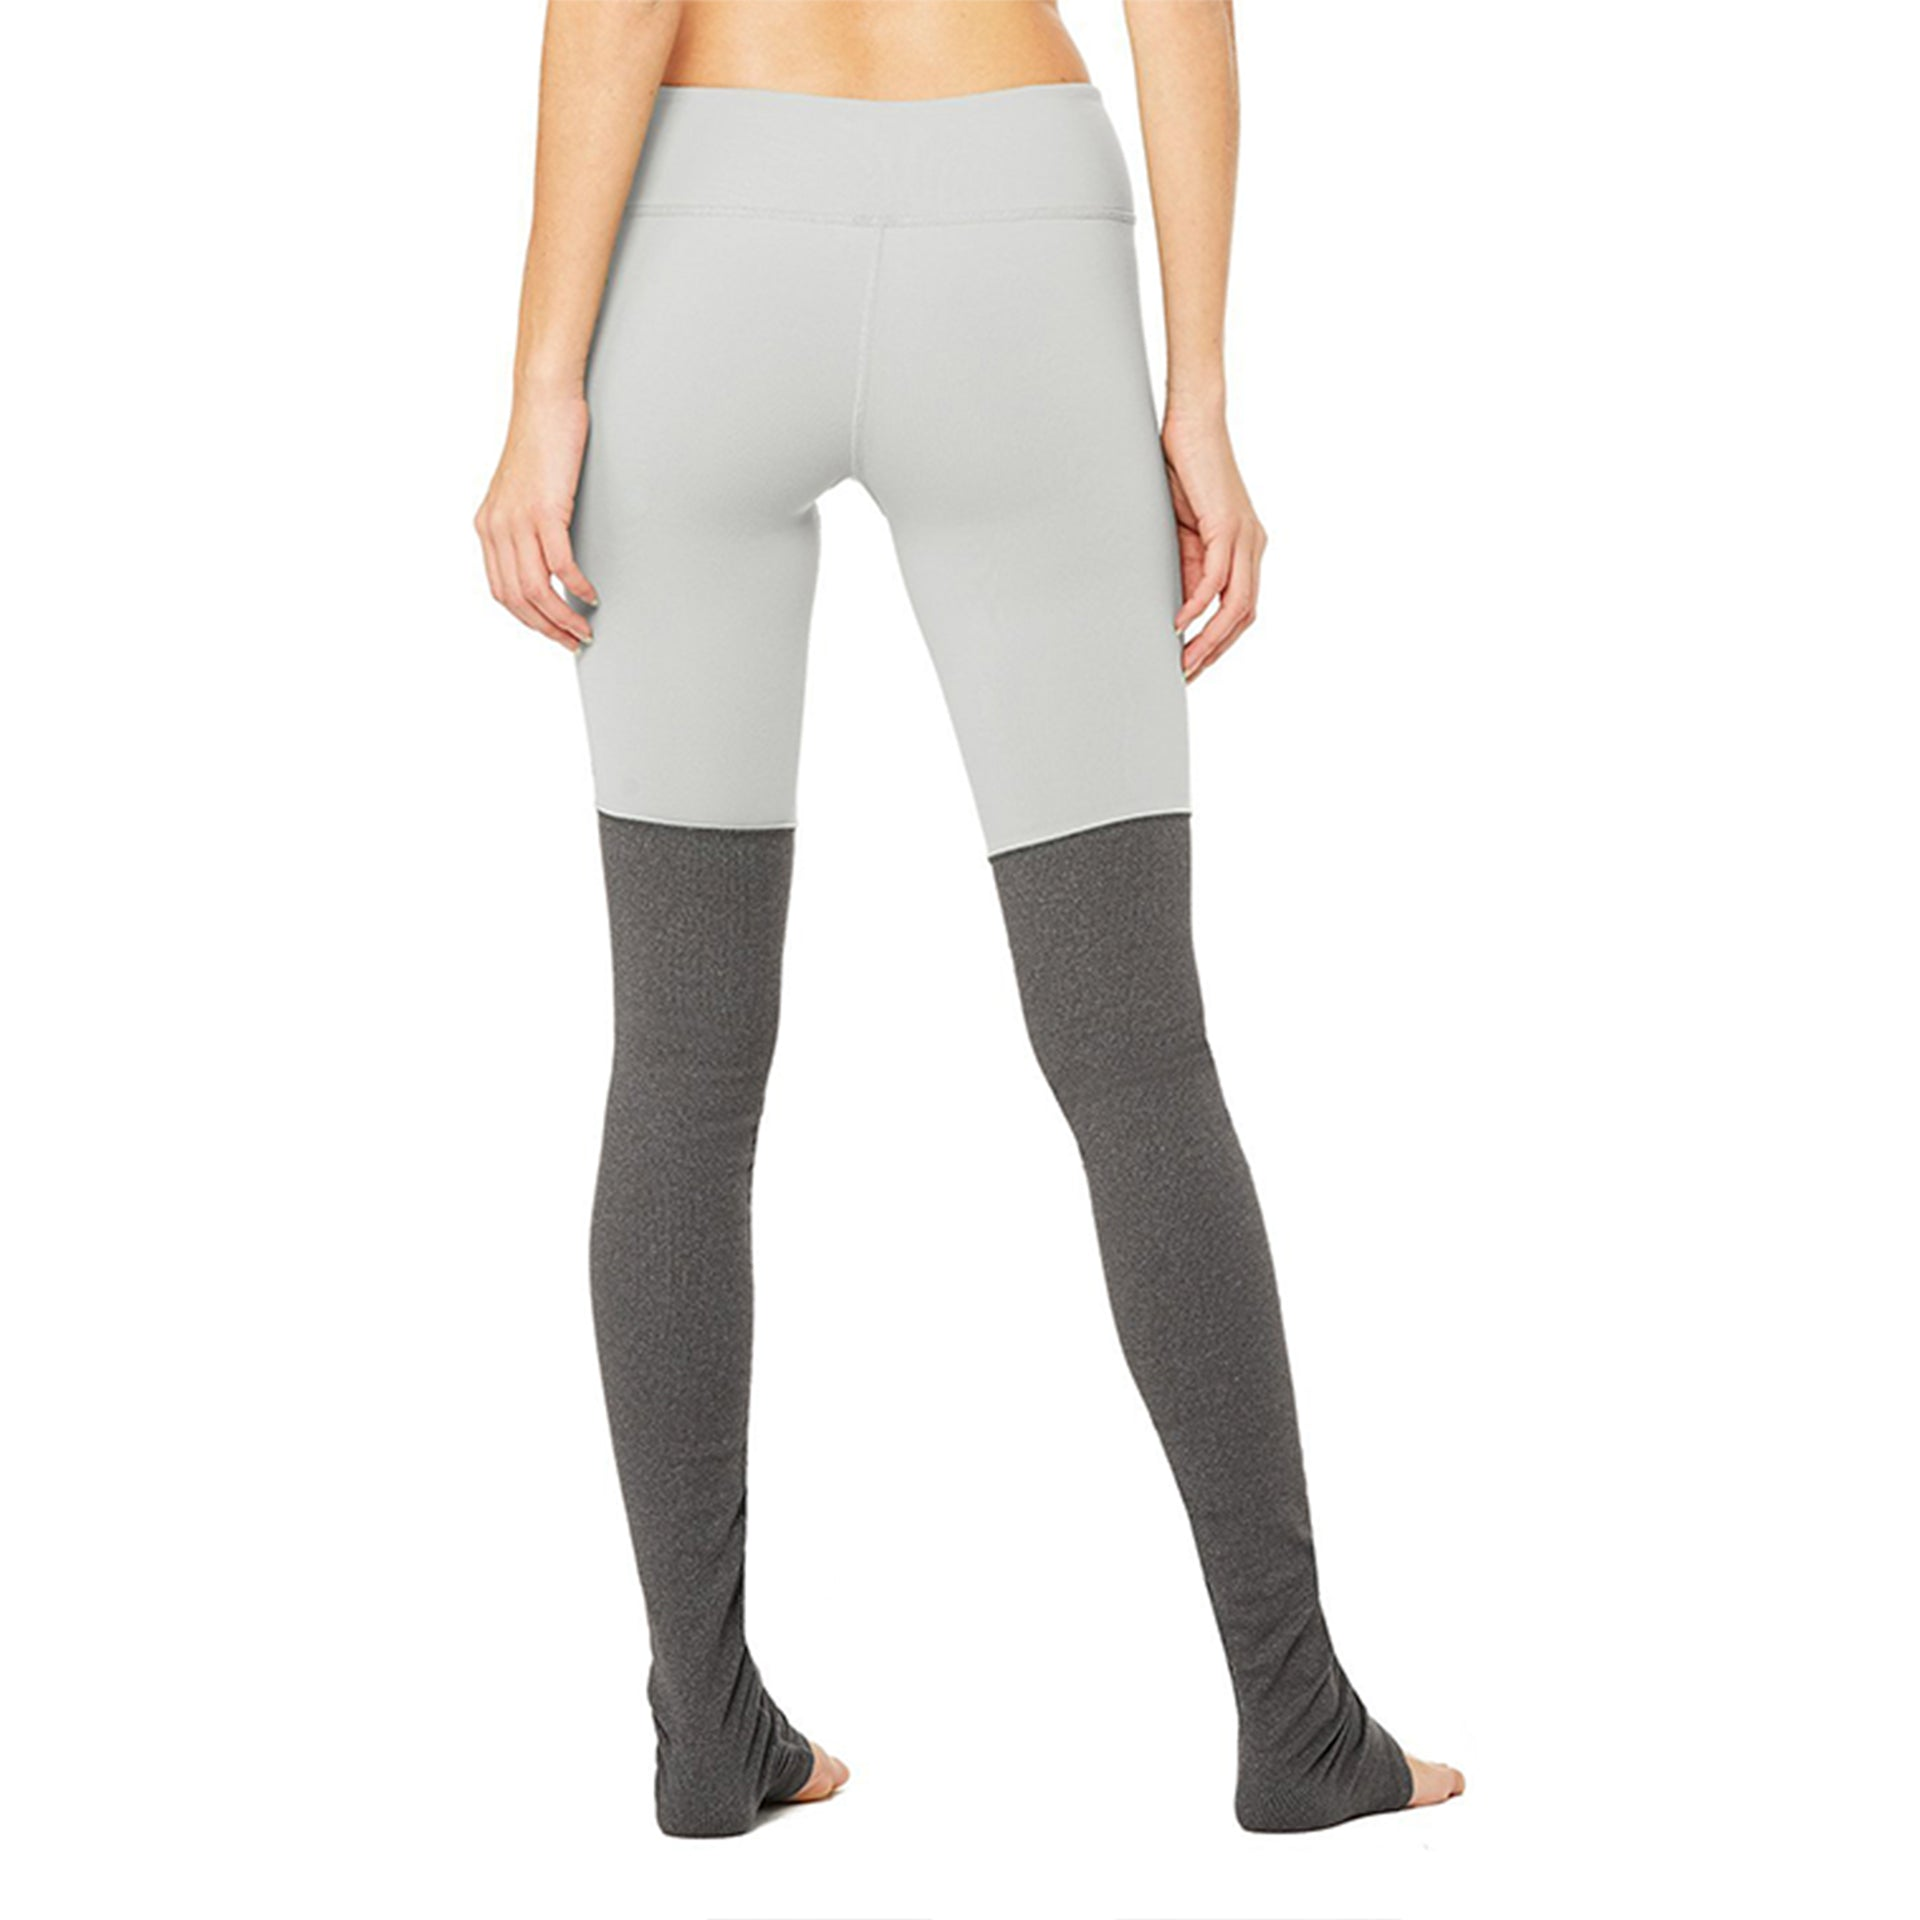 Alo Yoga Goddess Leggings in Alloy/Stormy Heather